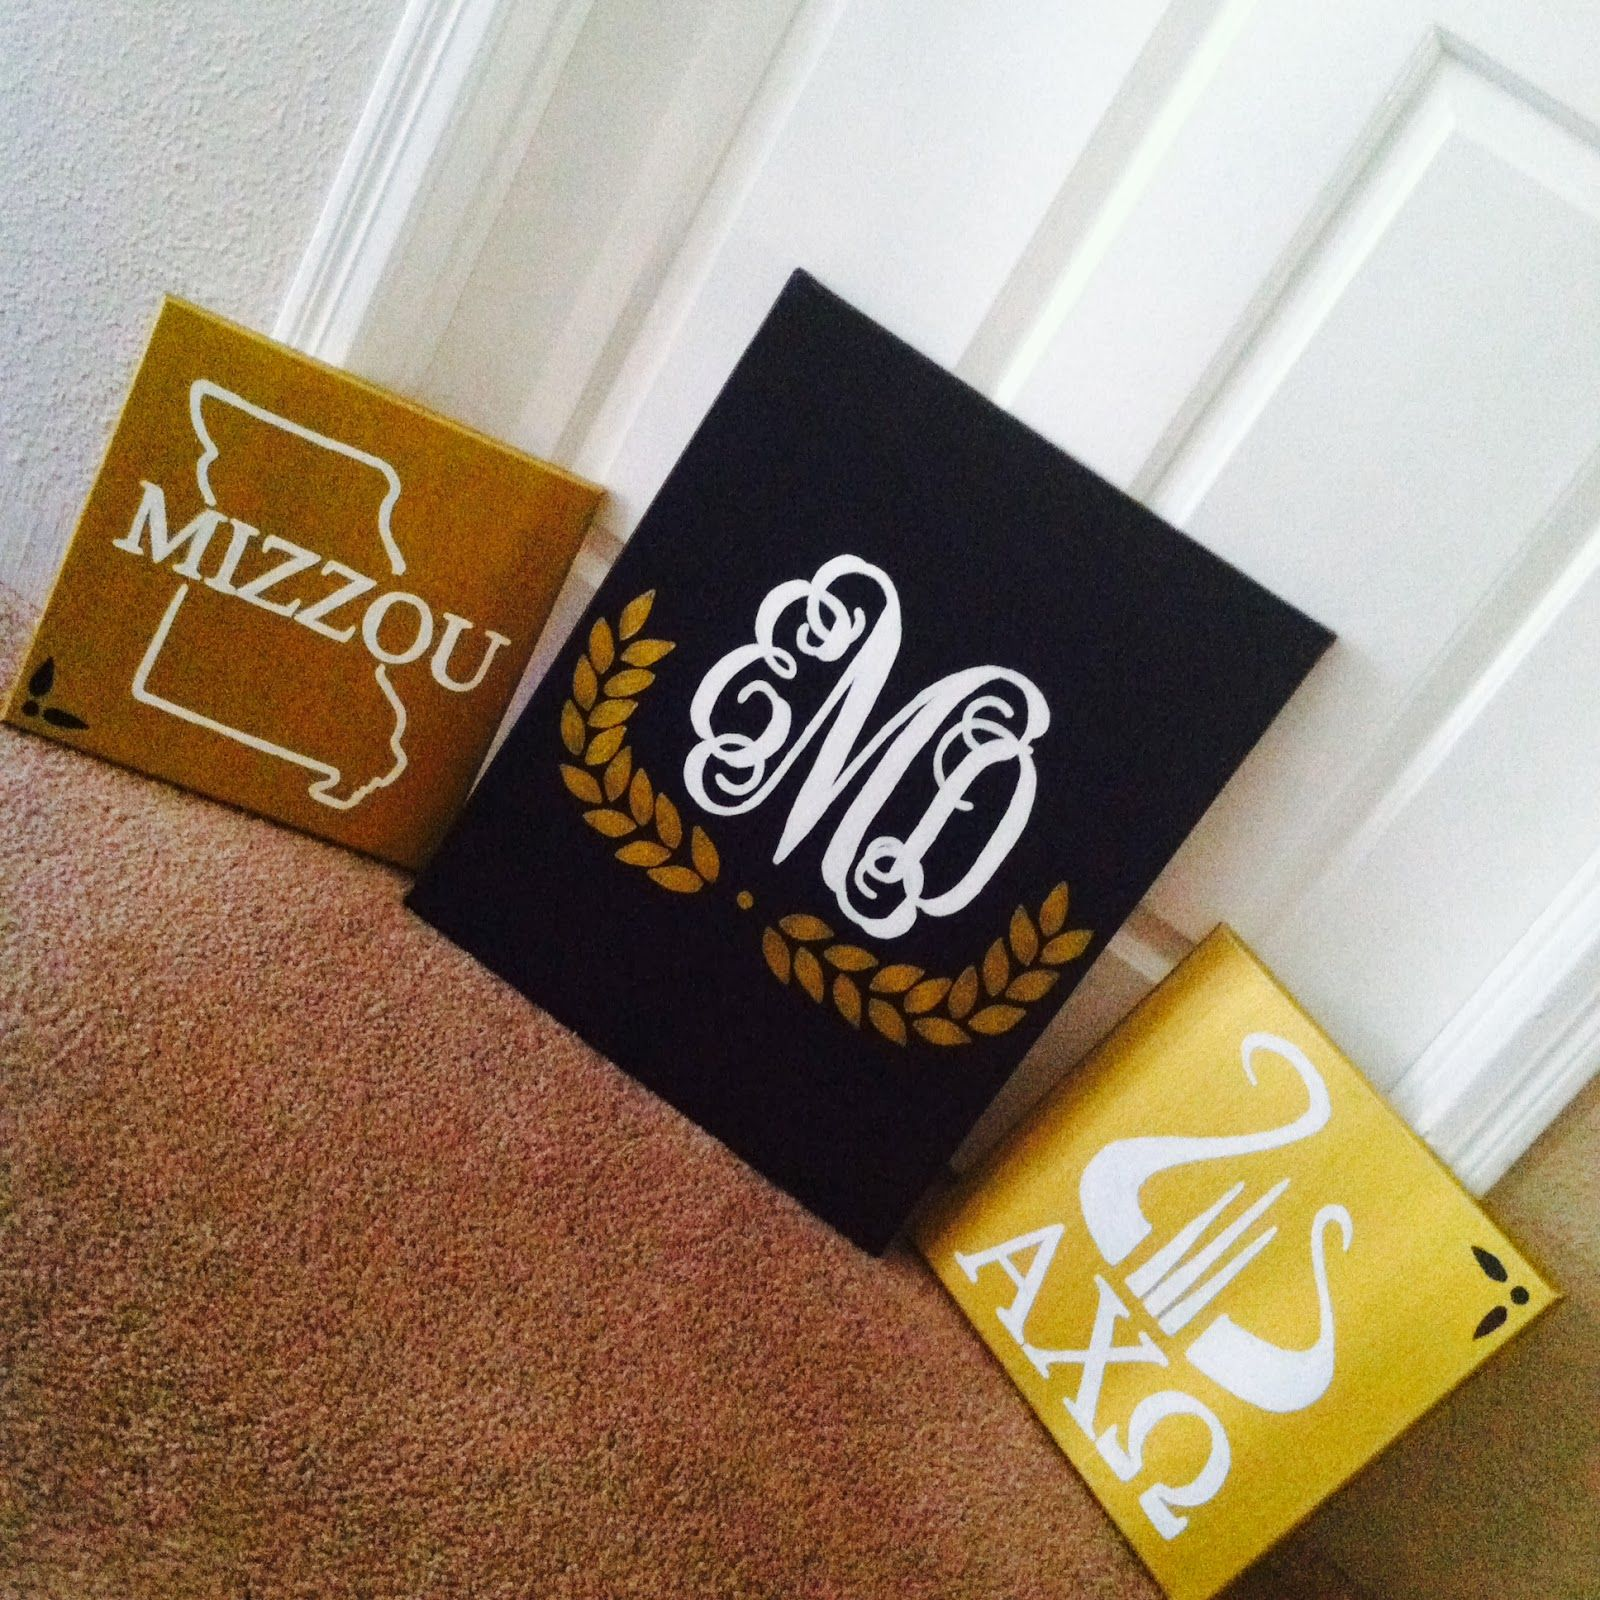 mizzou canvas painting - Google Search | Alpha Chi Omega